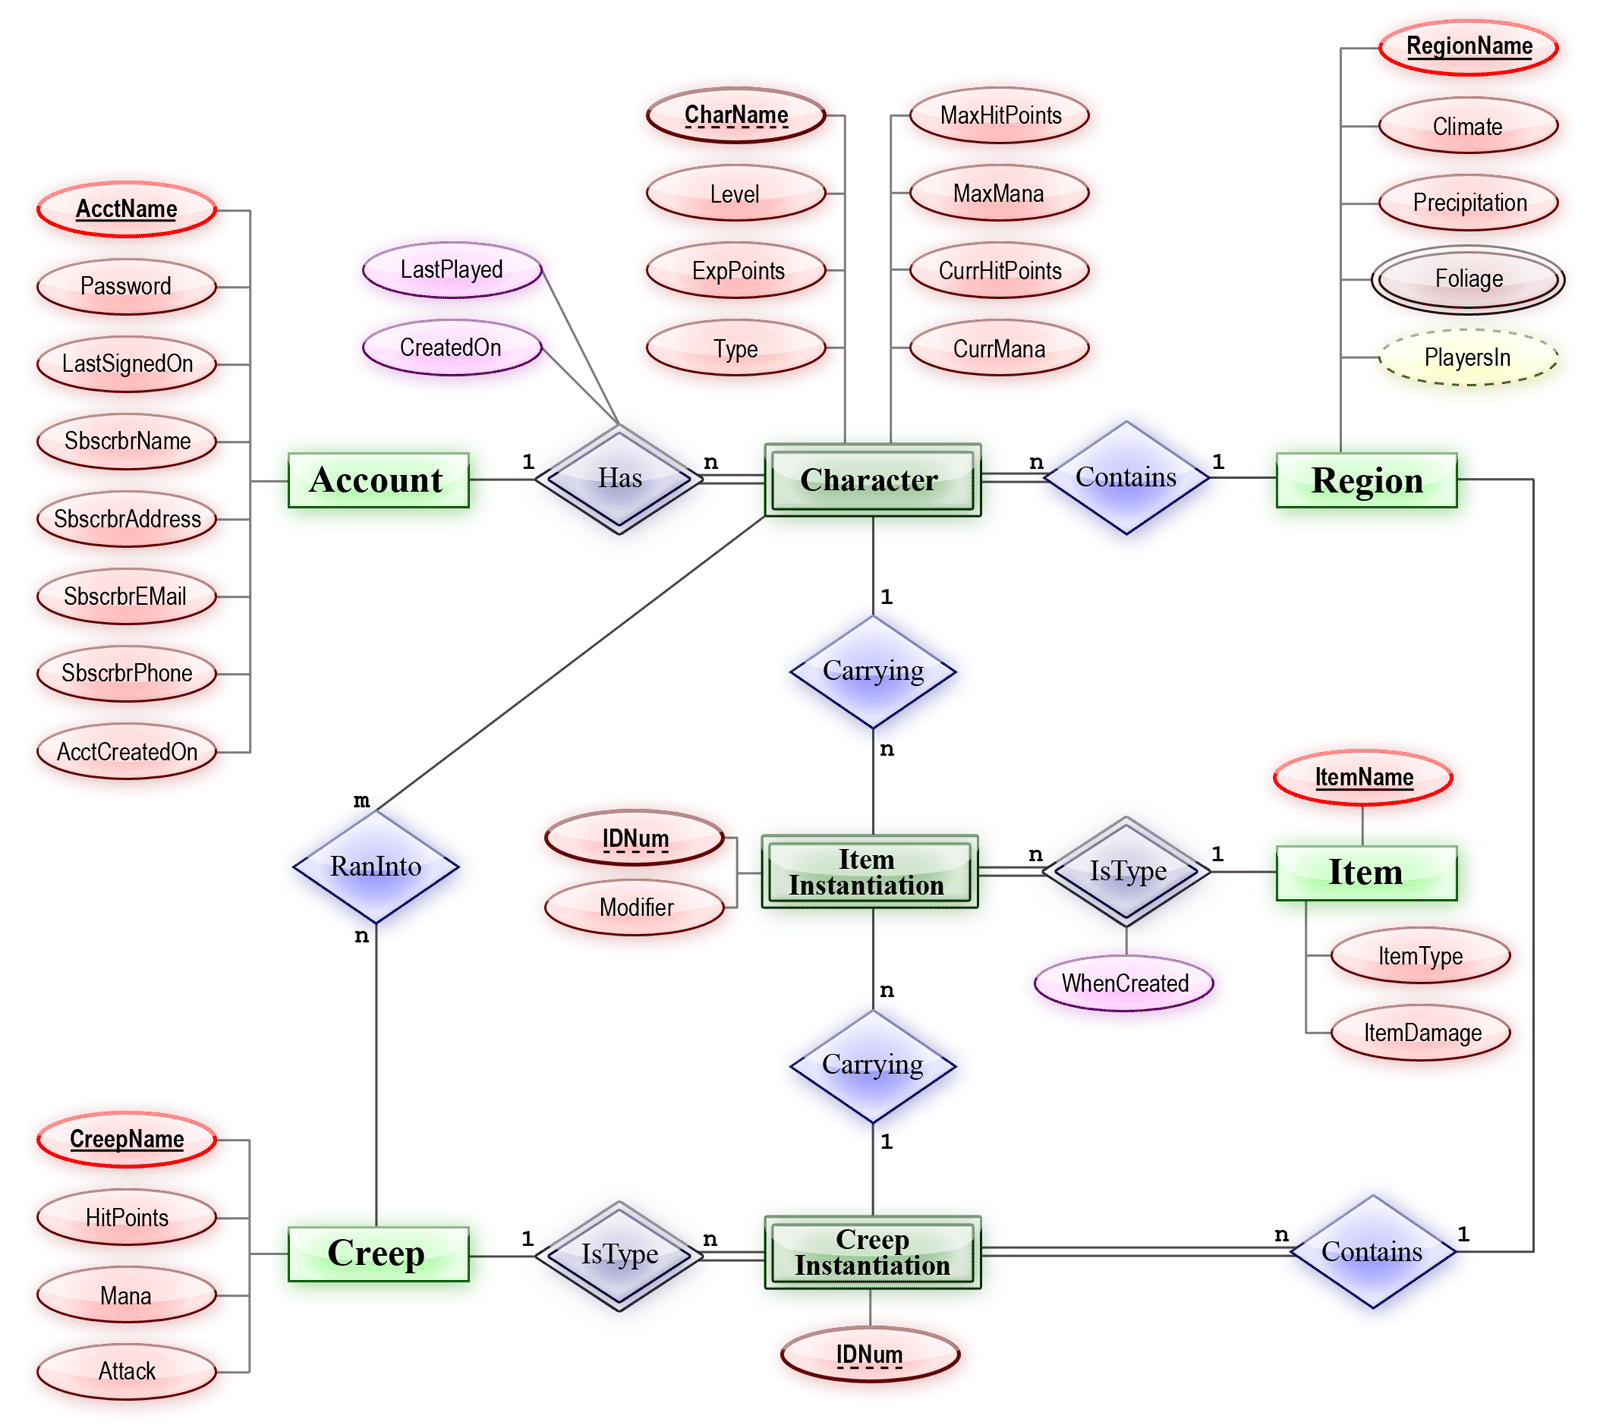 A Schema, http://upload.wikimedia.org/wikipedia/commons/7/72/ER_Diagram_MMORPG.png